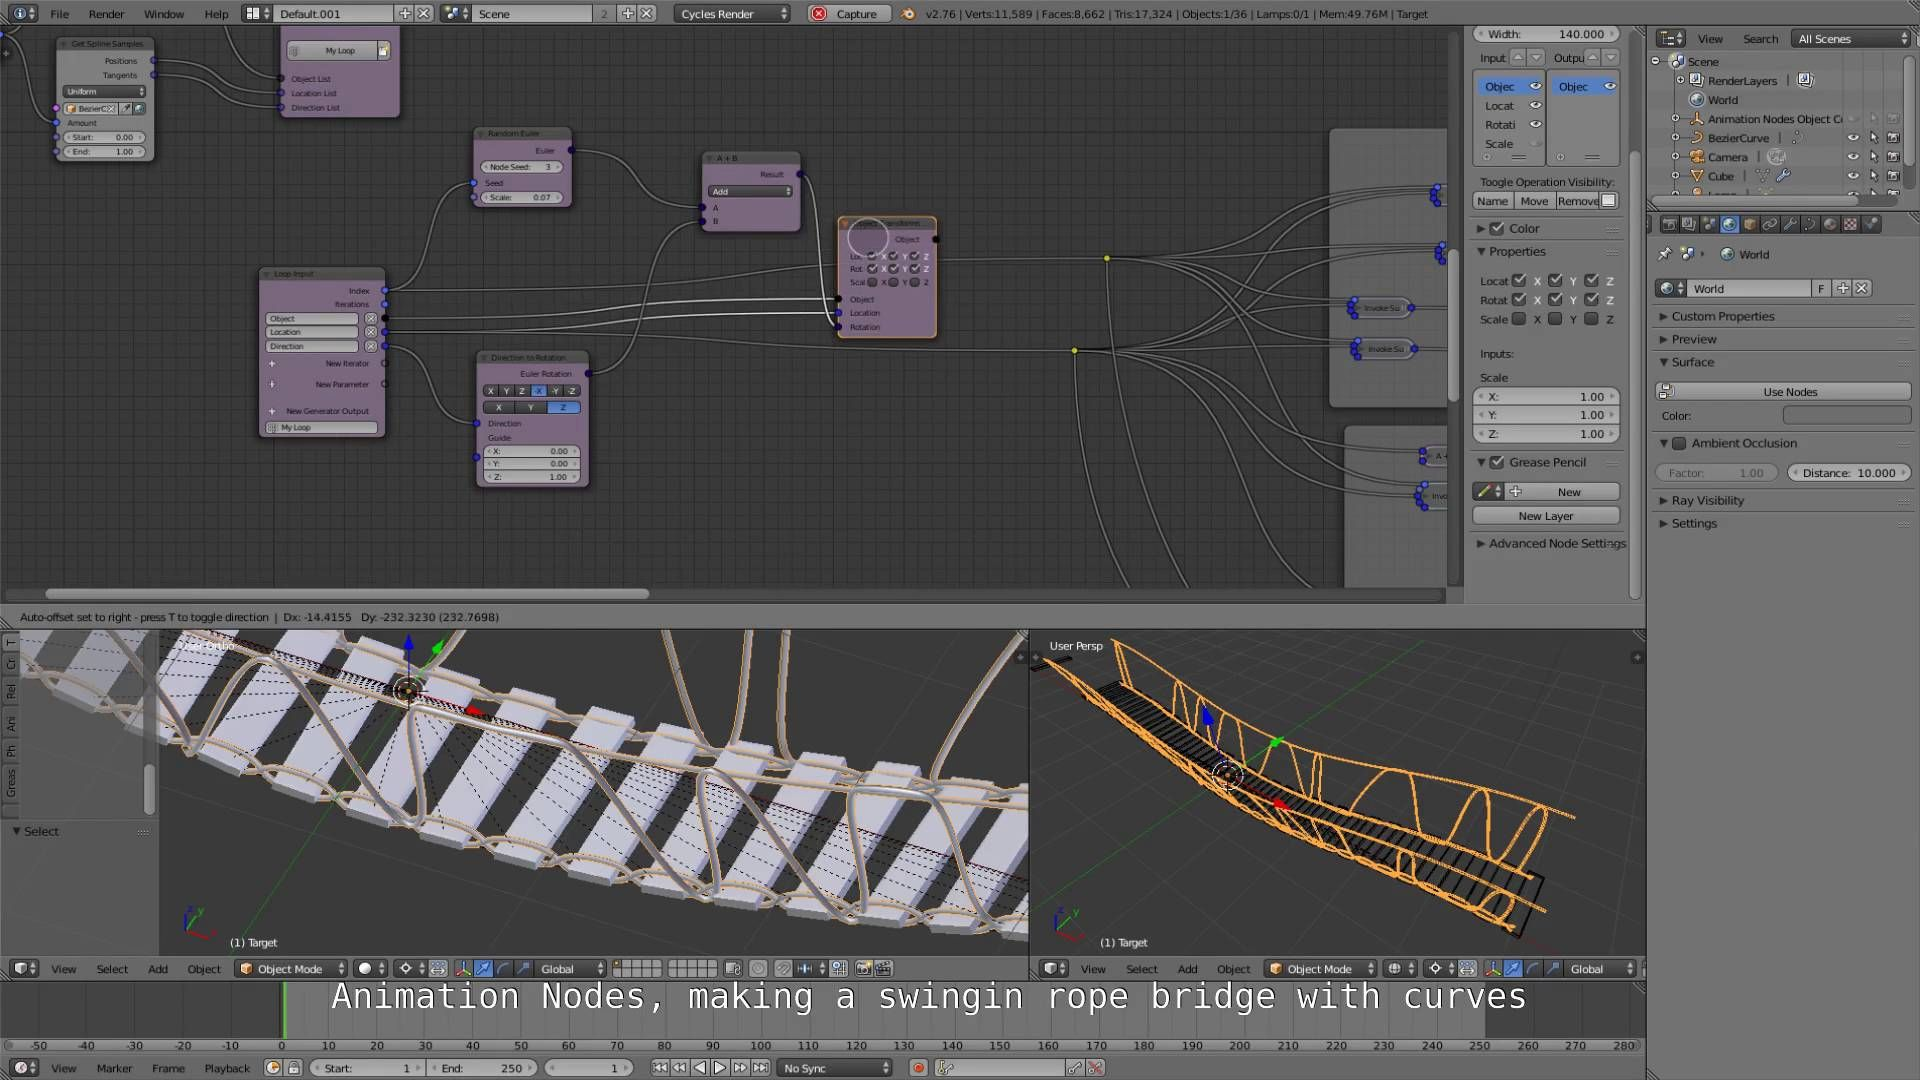 Animation Nodes Curves 3 Swinging Rope Bridge Blender Tutorial 3d Tutorial Blender 3d